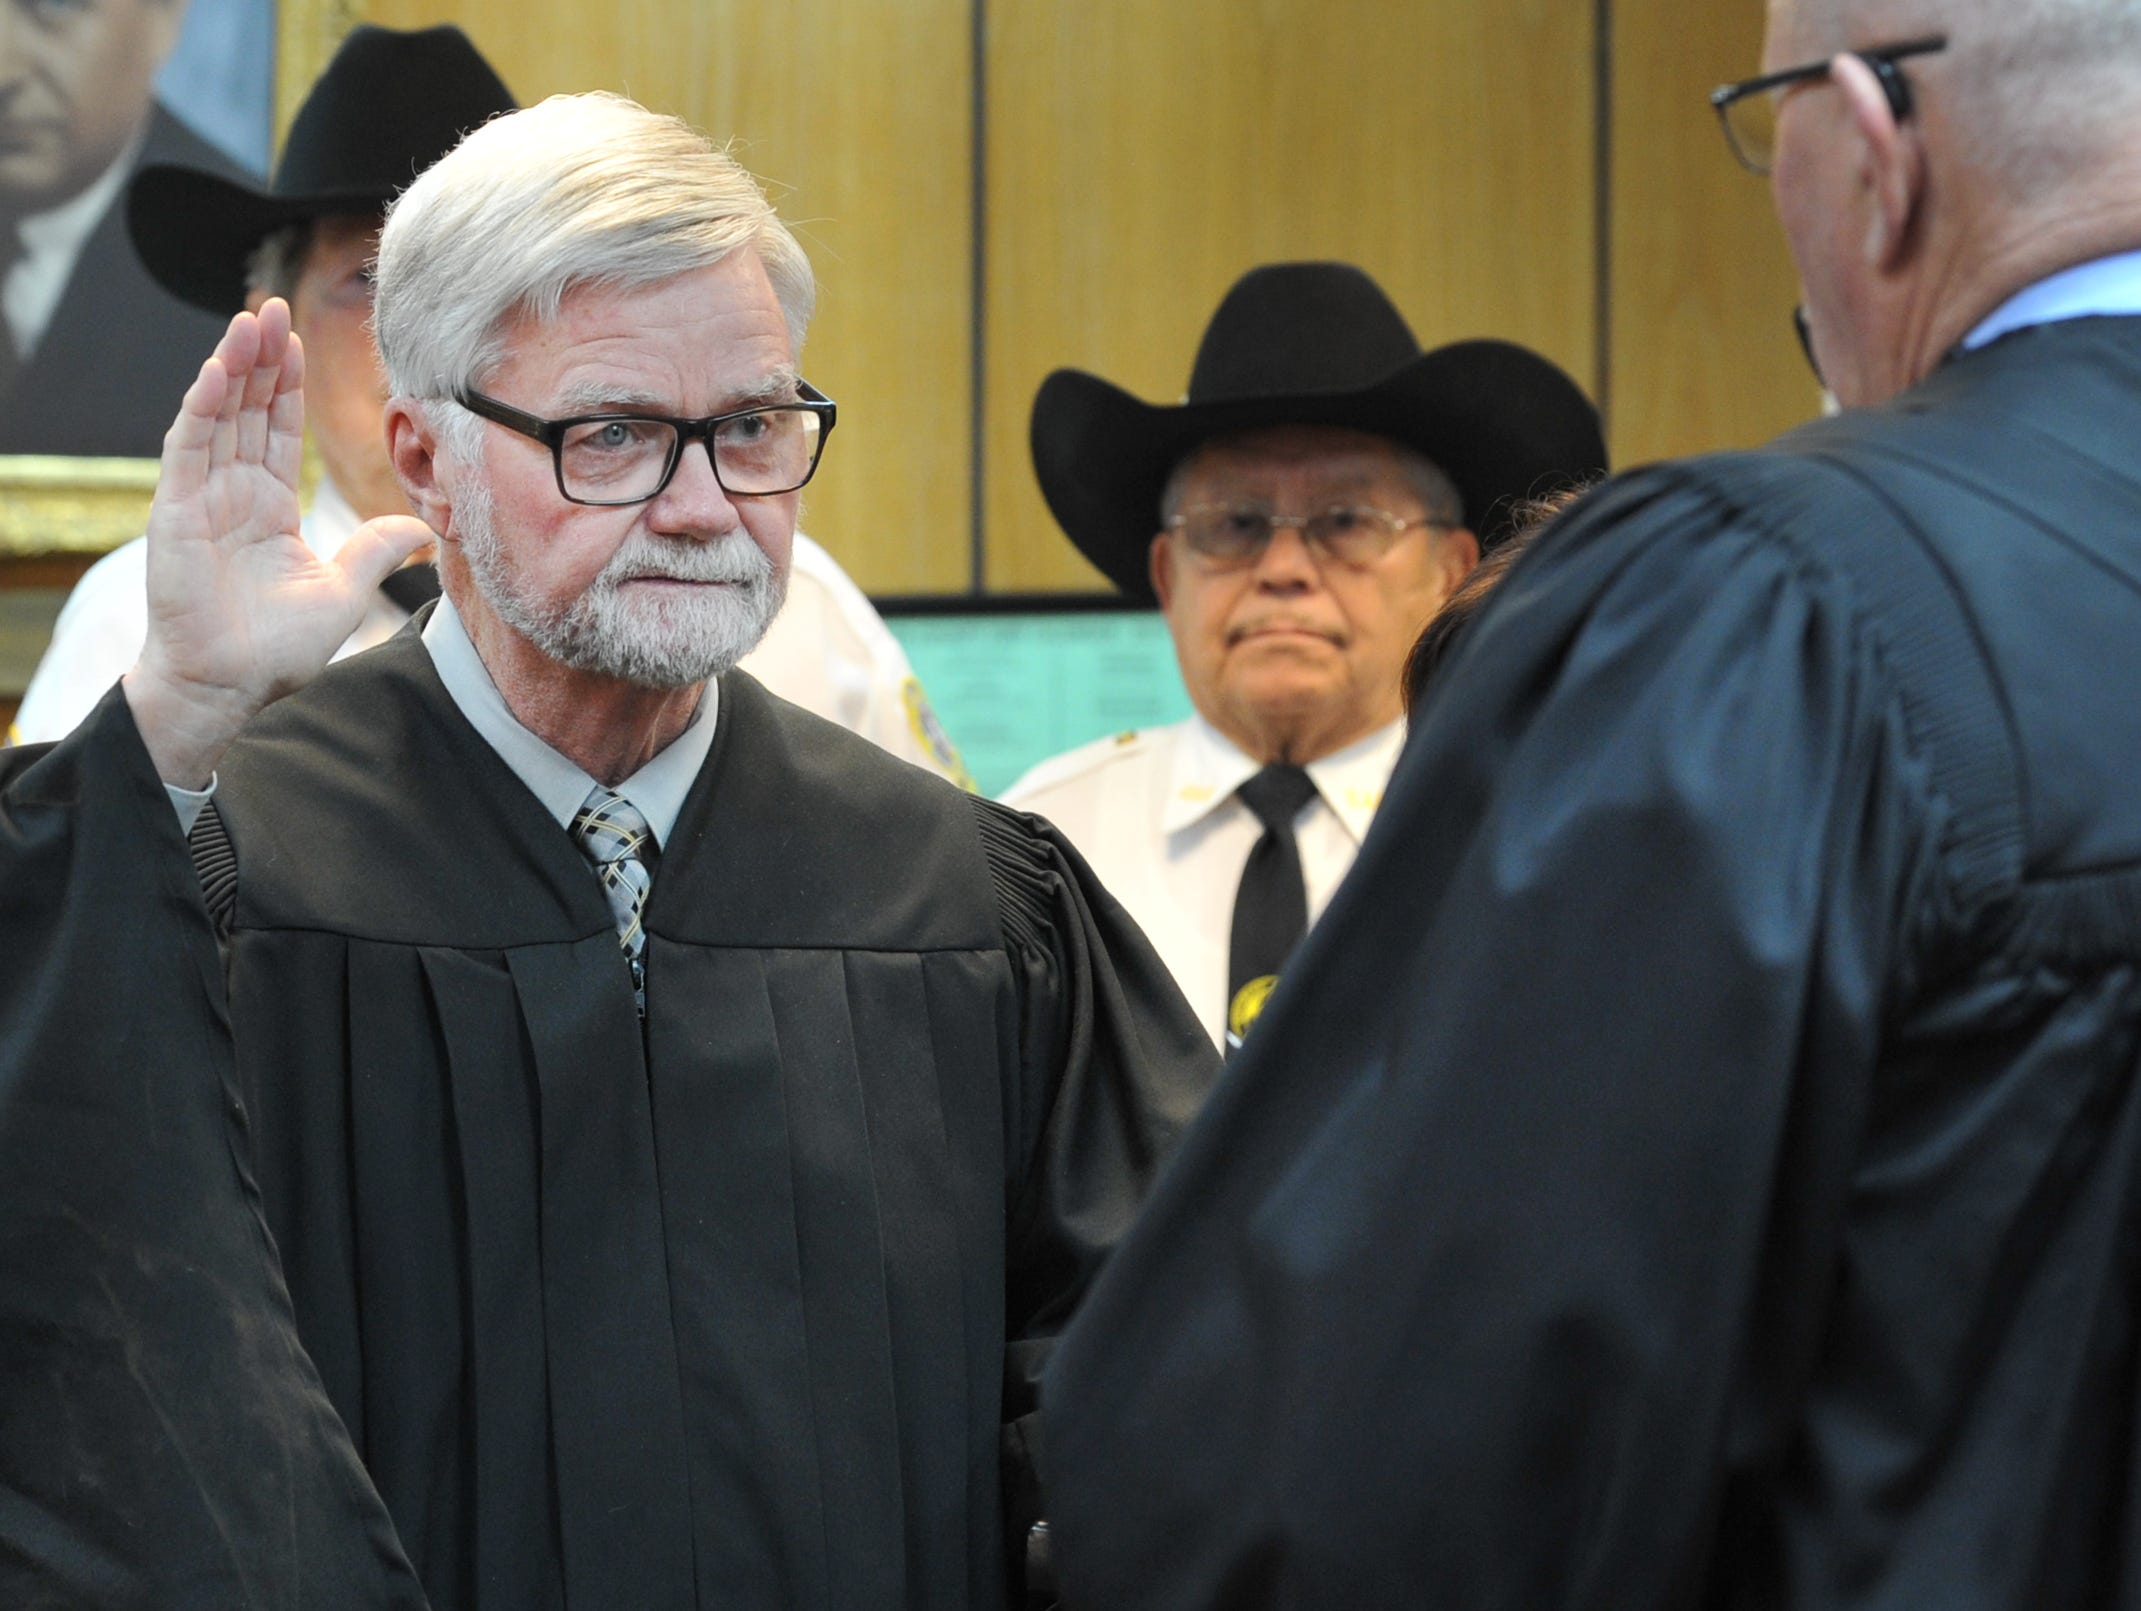 Wichita County Judge Woodrow W. Gossom, Jr. was sworn in during a ceremony held in the 30th district courtroom, Tuesday morning.